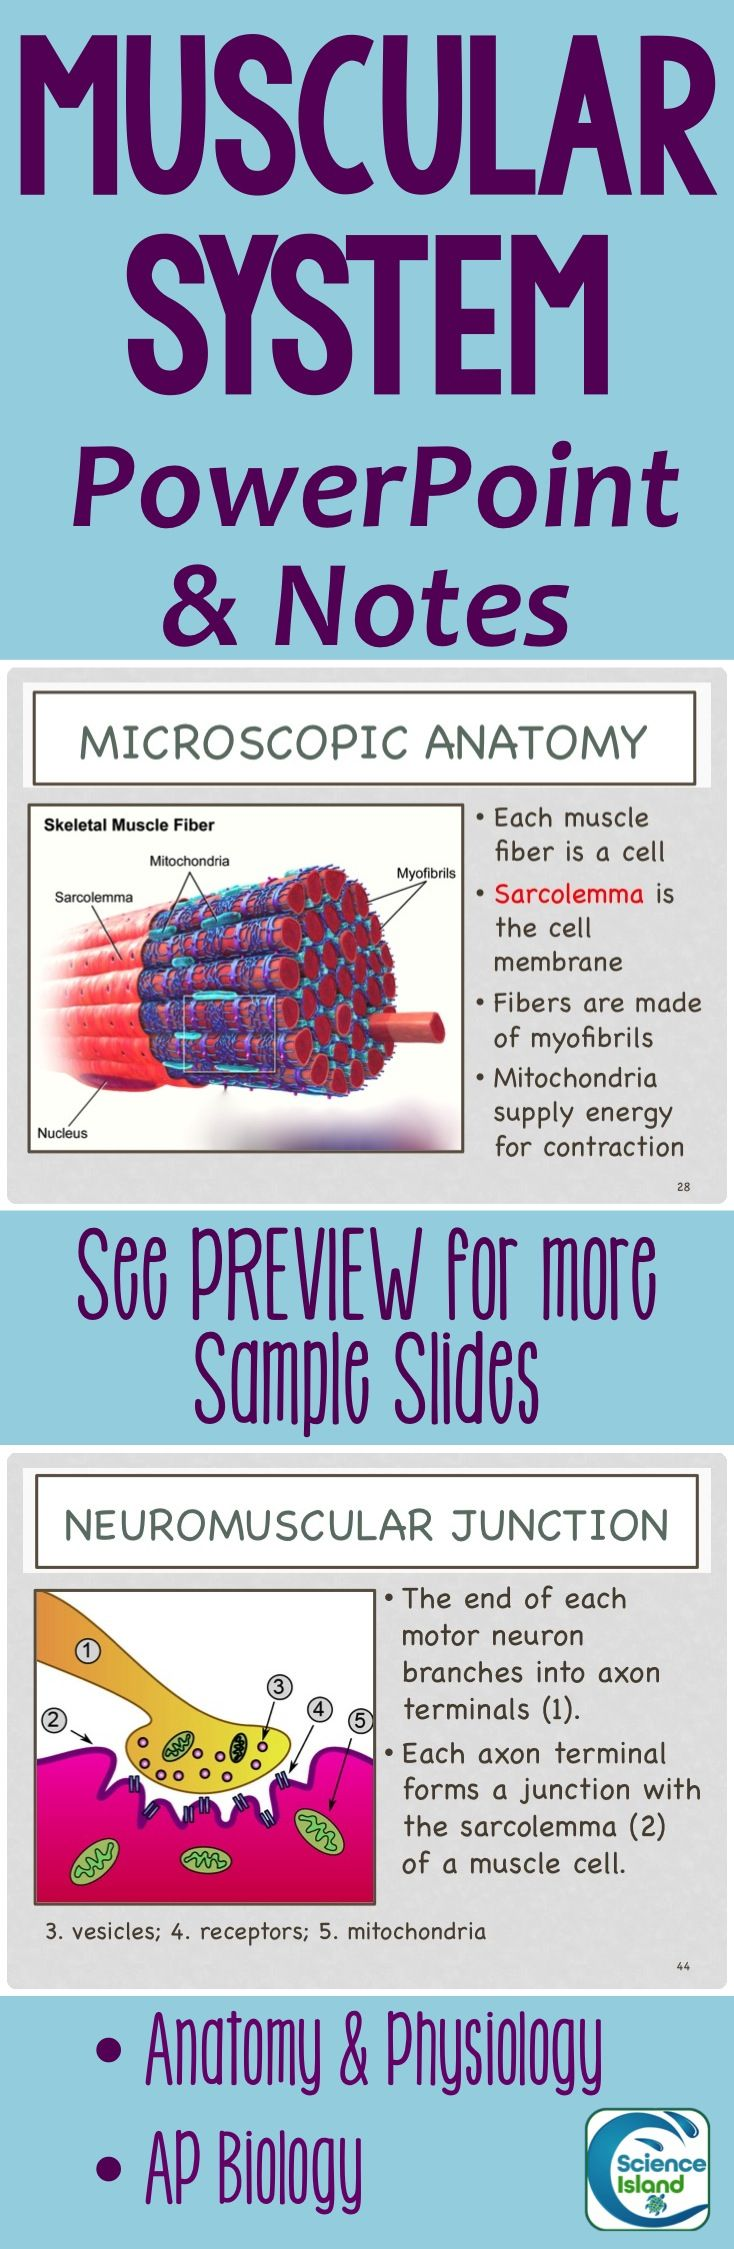 Beautiful, clear, and concise presentation on the Muscular System. Take a look at the PREVIEW for more details. Designed for Anatomy & Physiology or AP Biology.